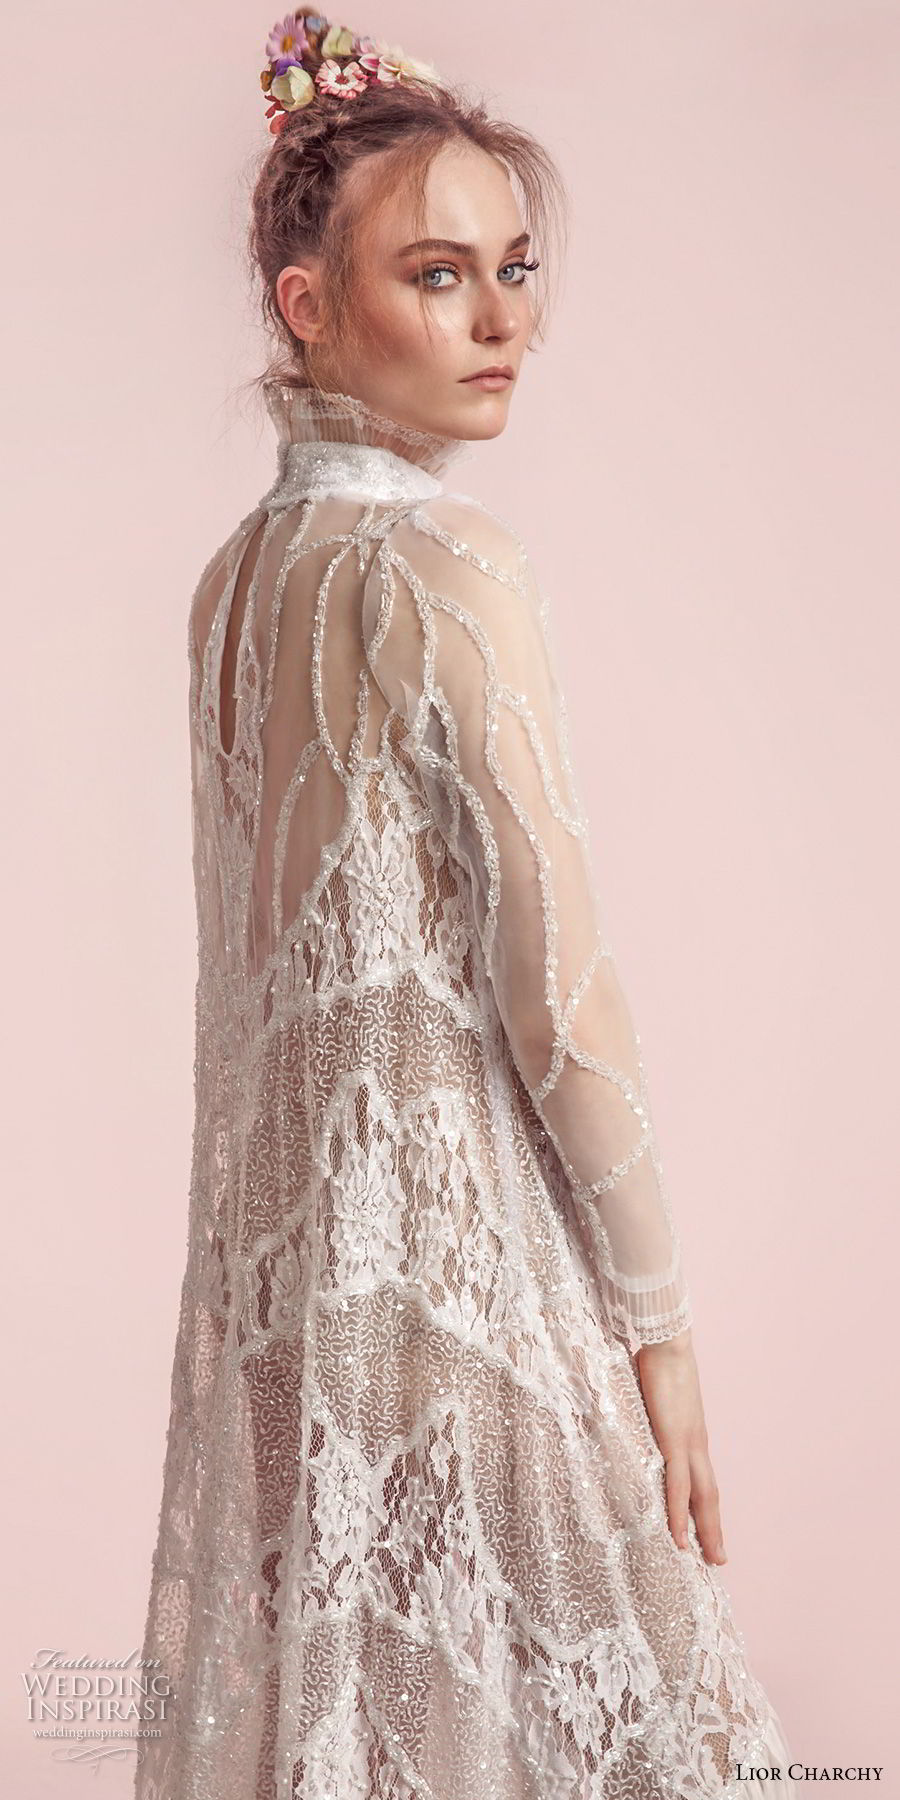 lior charchy spring 2017 bridal long sleeves high neck full embellishment bohemian retro column wedding dress covered back sweep train (1) zbv